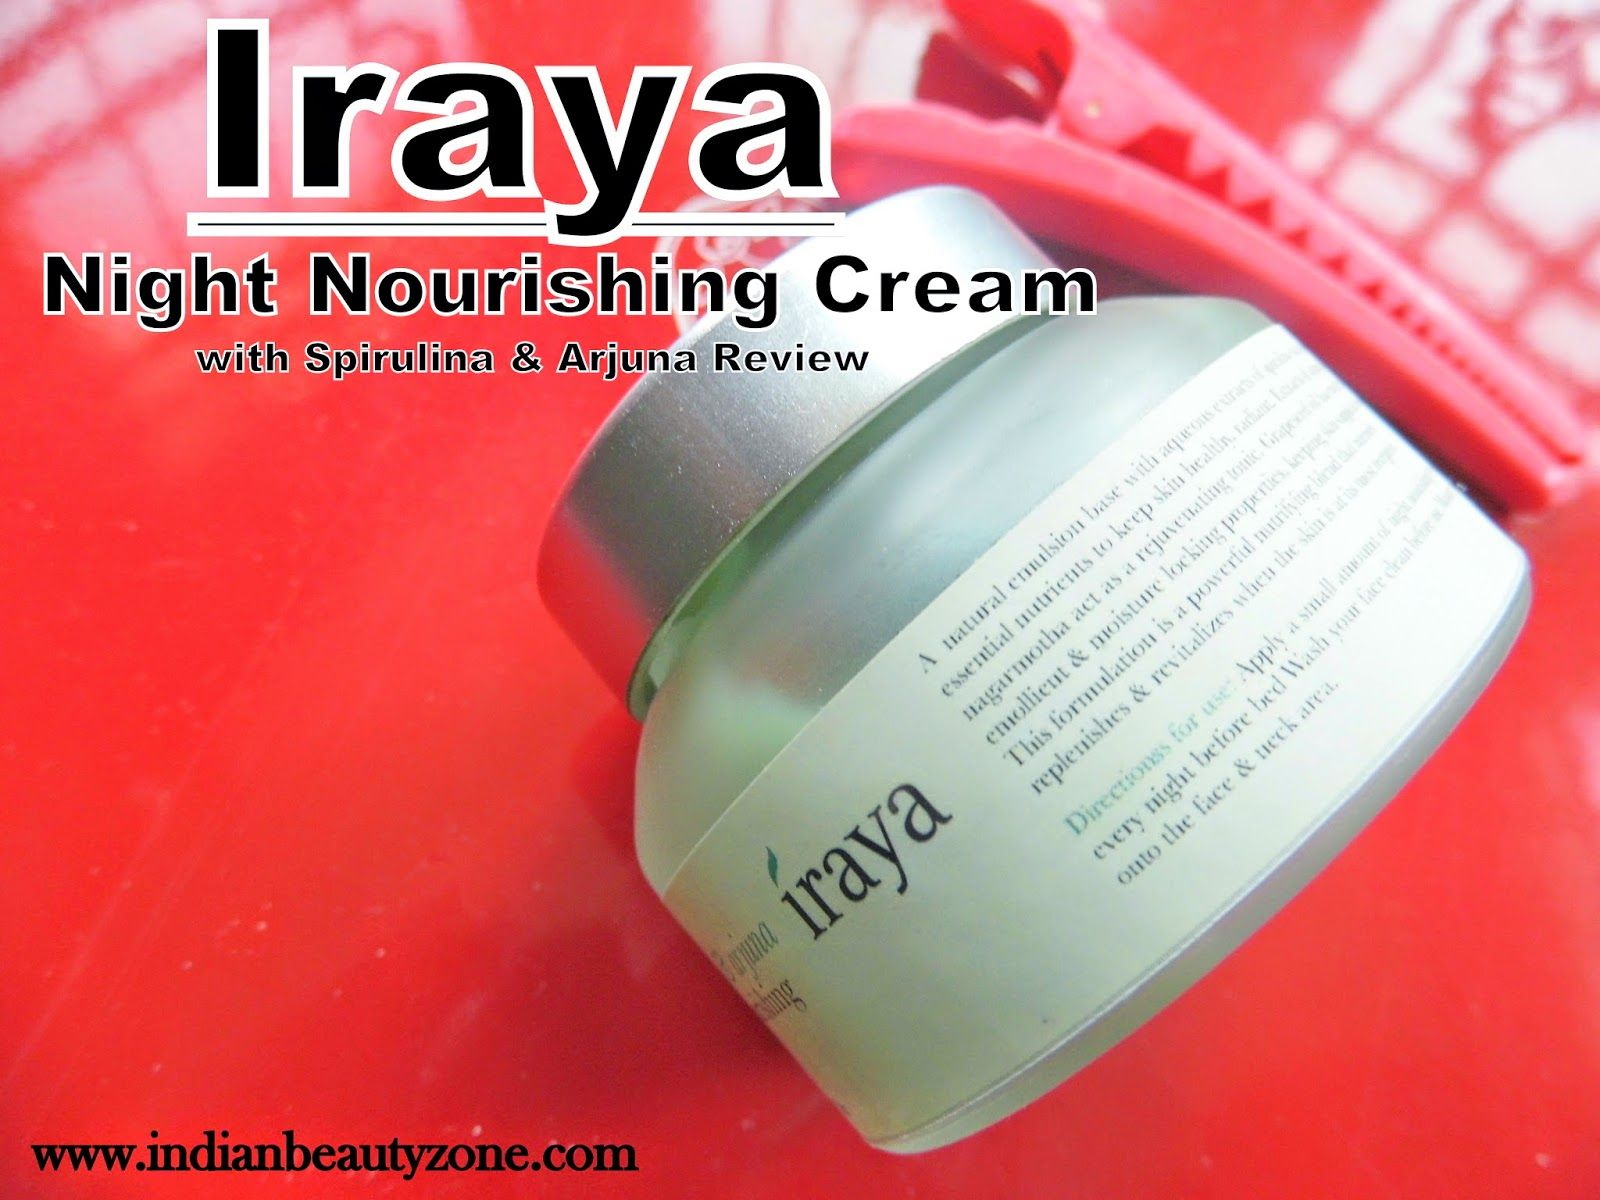 Iraya Night Nourishing Cream with Spirulina & Arjuna ReviewHello Beauties,After a long break I got some time to write a review. Night creams are becoming a must have product now a days for every girl, that too girls who are above 25 are better to start their night skin care routine with good night c